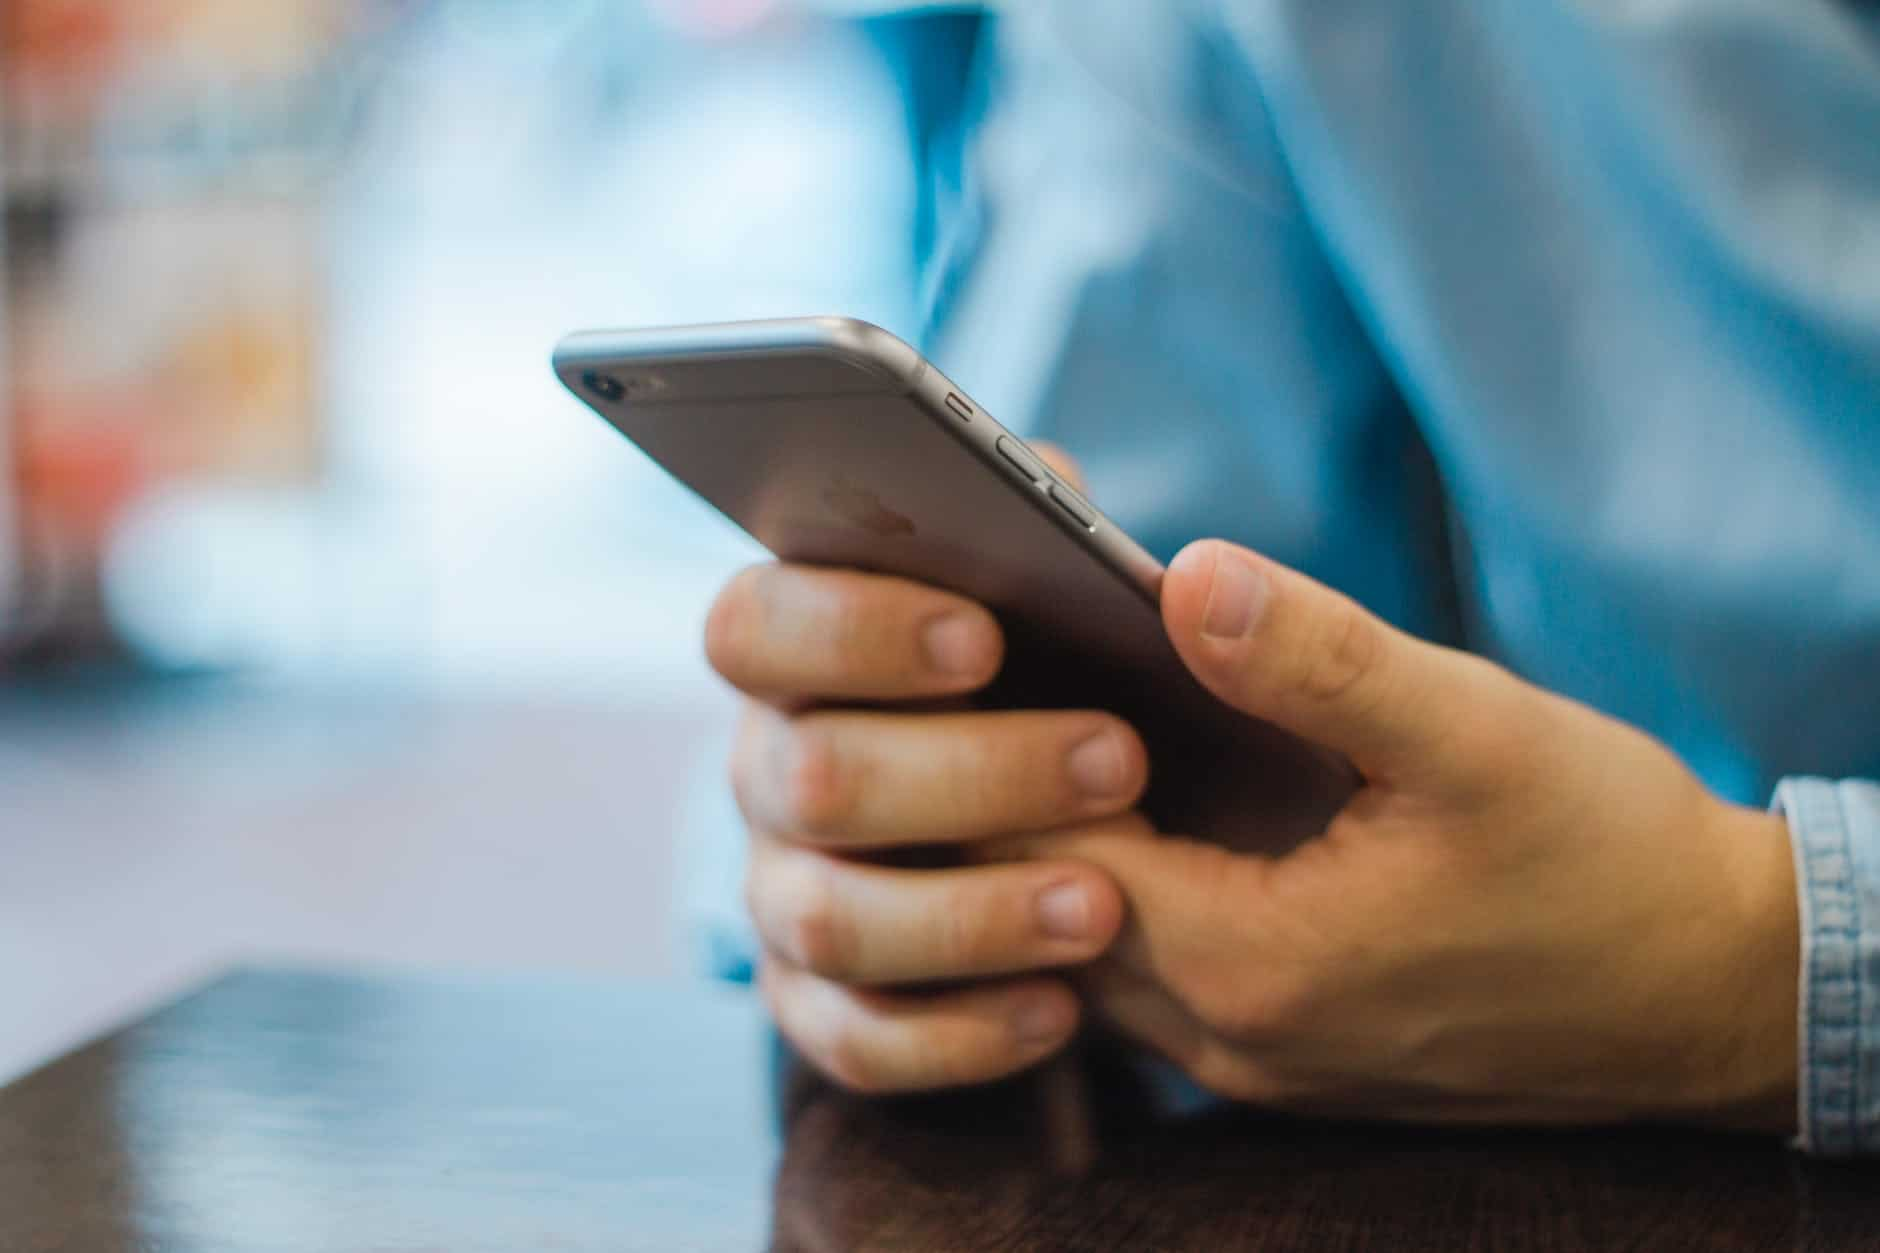 Raffle scam text addressing Mississauga and Brampton residents by name